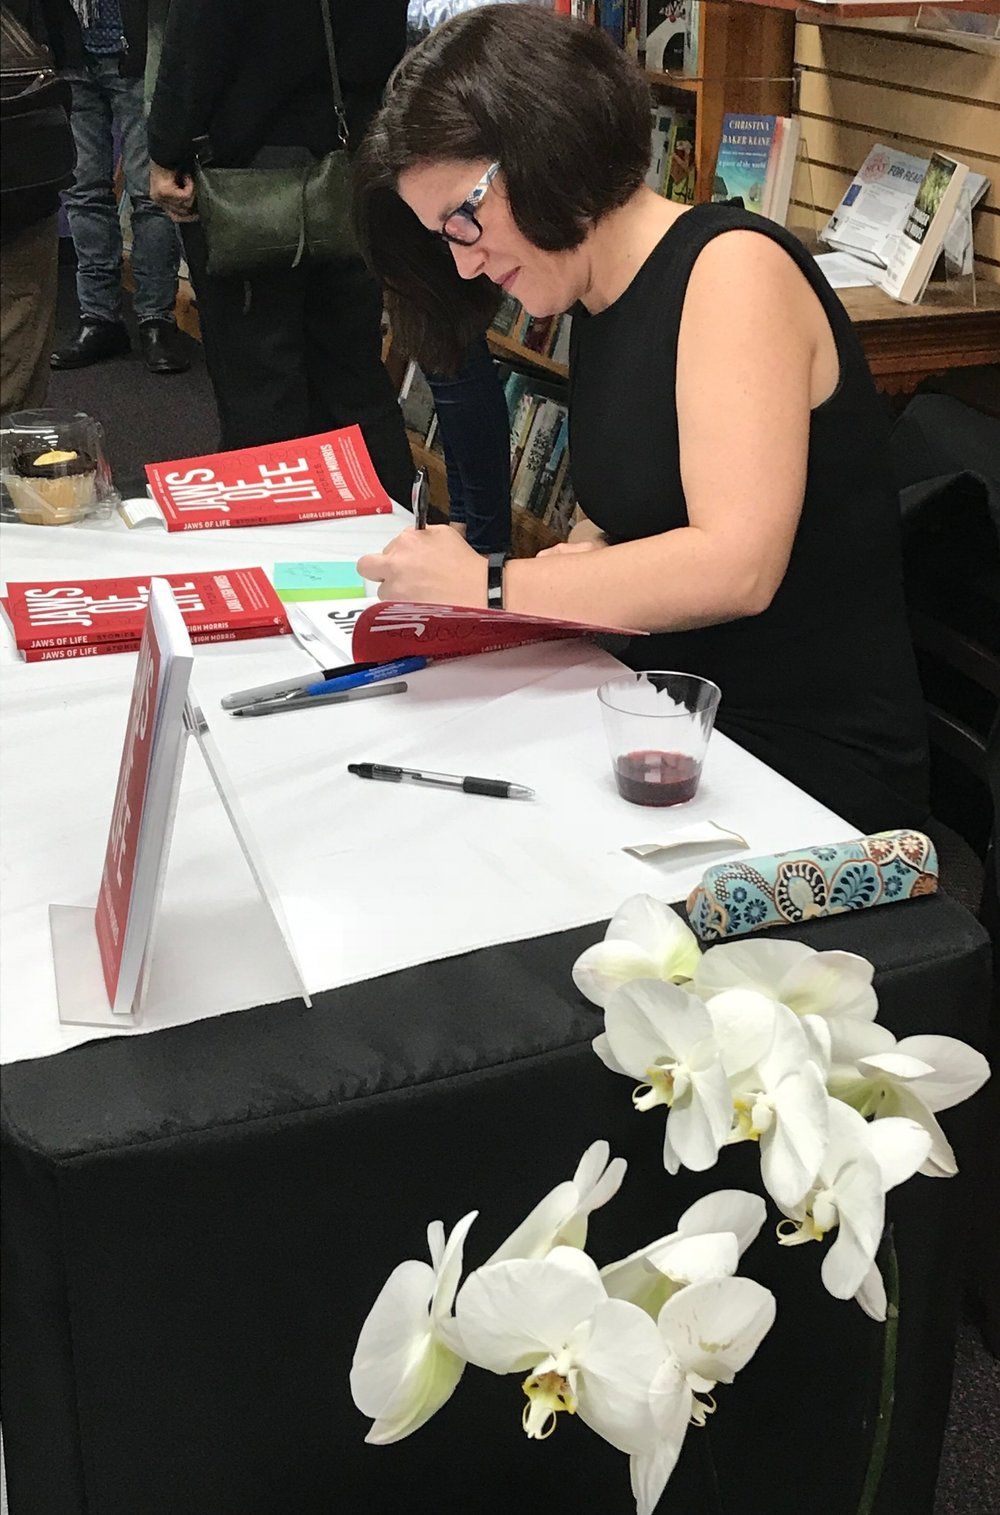 Laura signs copies of JAWS OF LIFE at her book launch at Fiction Addiction in Greenville, SC.